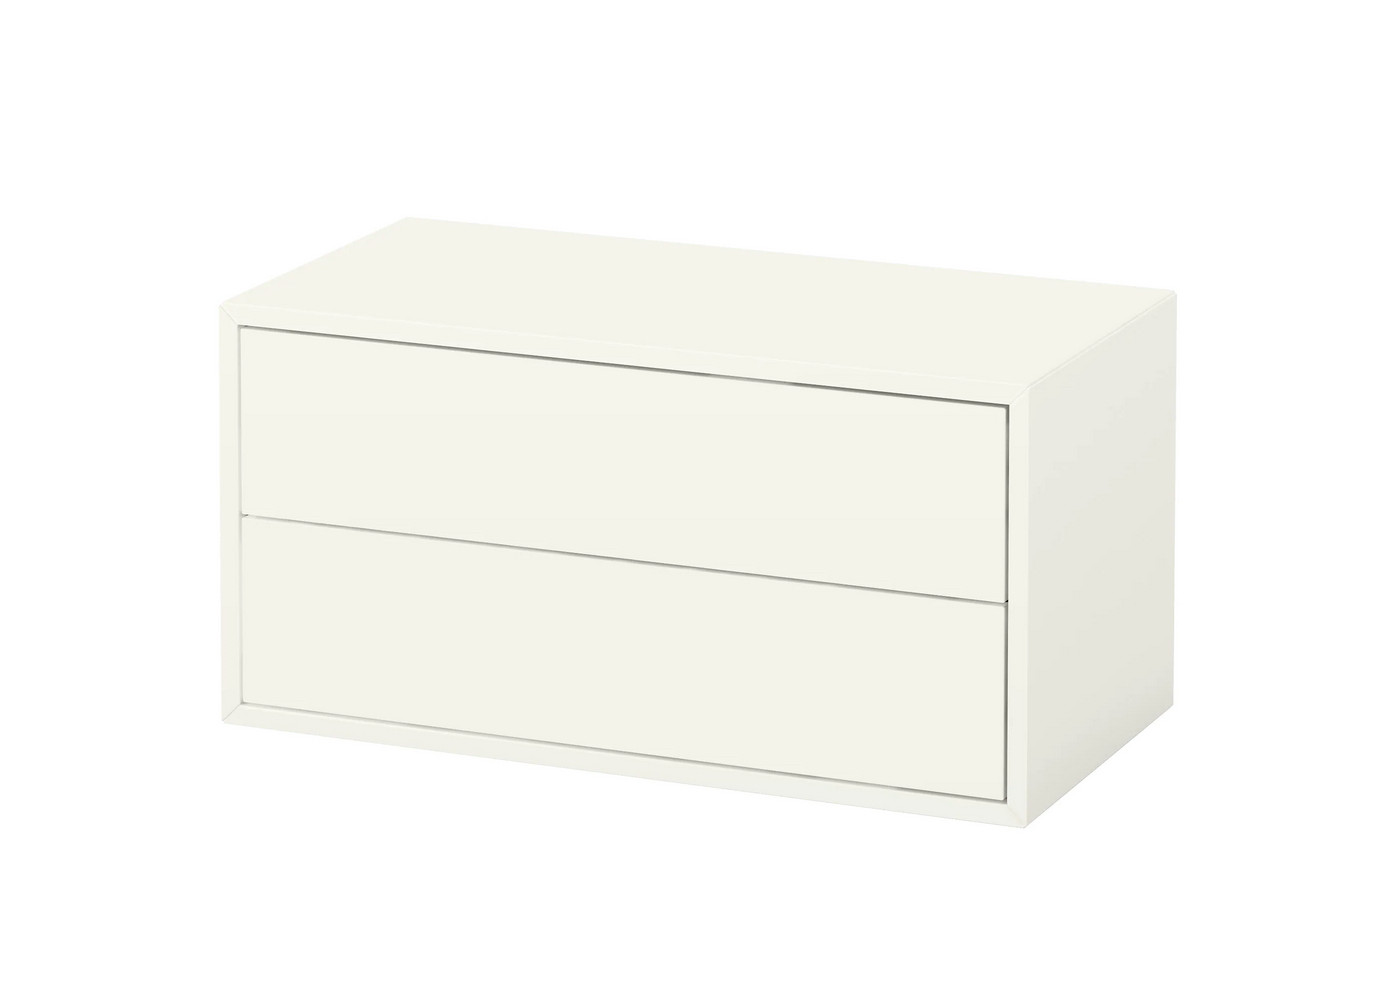 Ikea Eket 2 Drawer White Cabinets